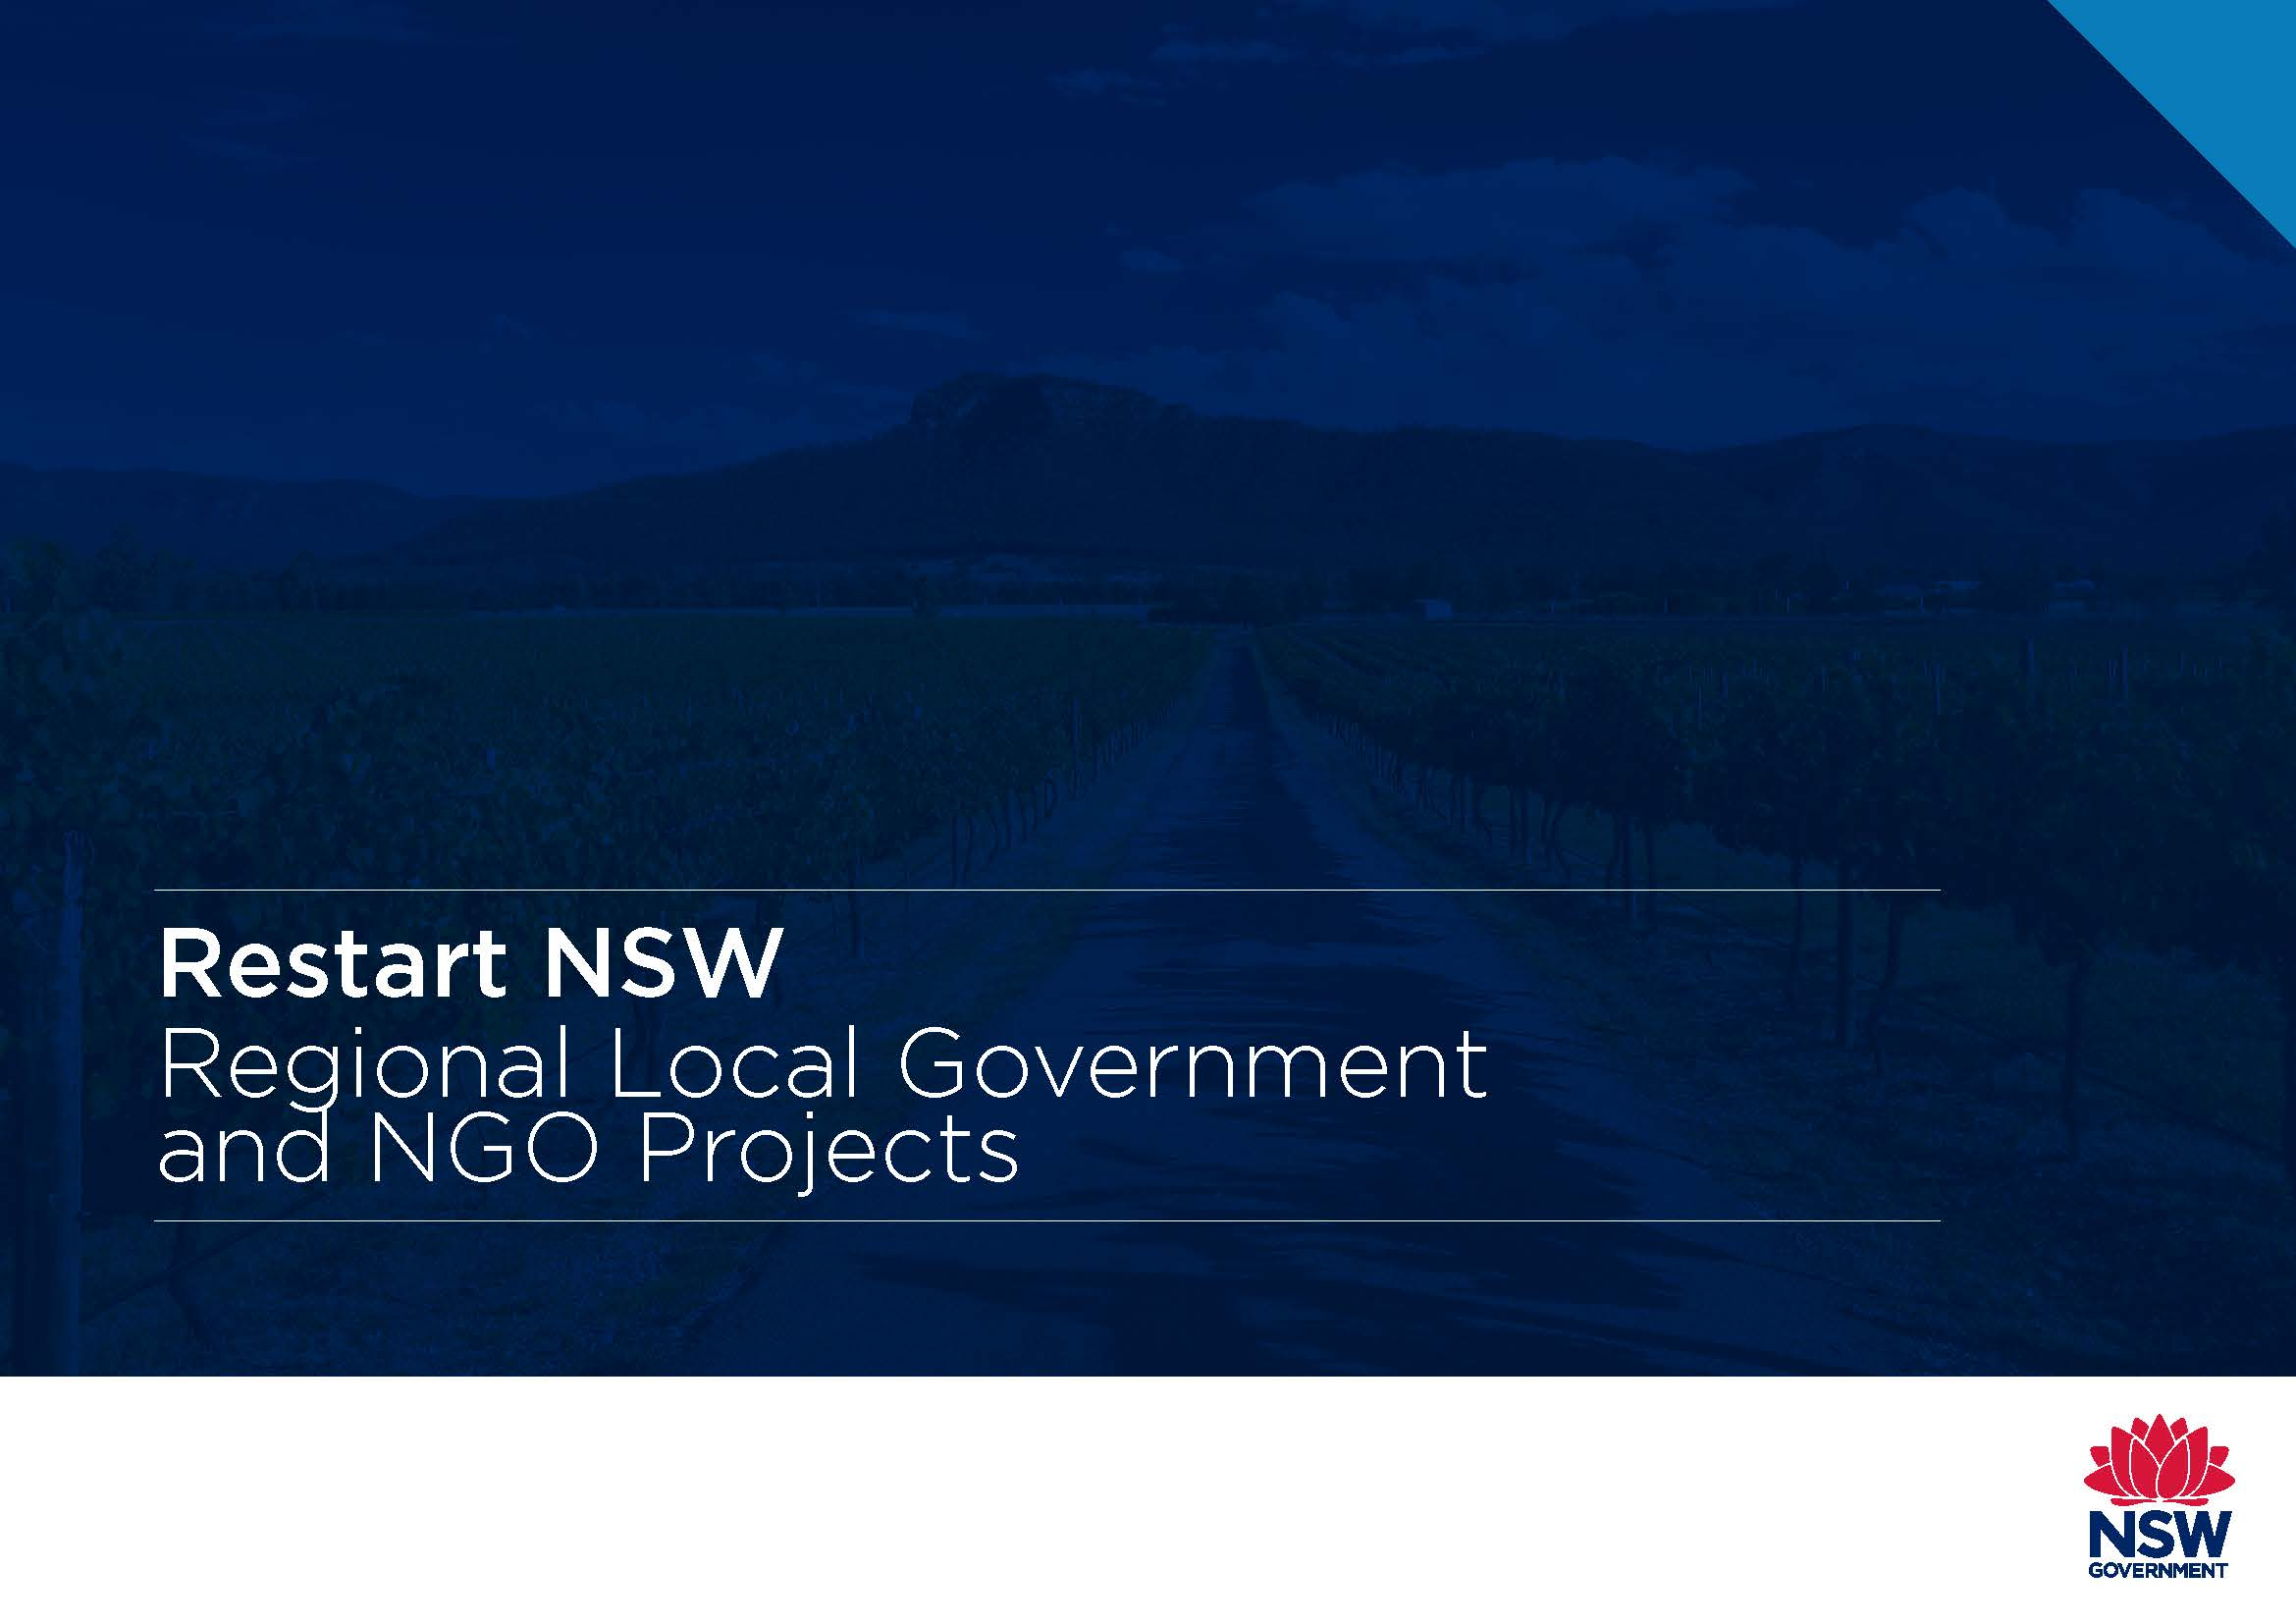 Pages from Restart NSW Booklet - 27112017.jpg